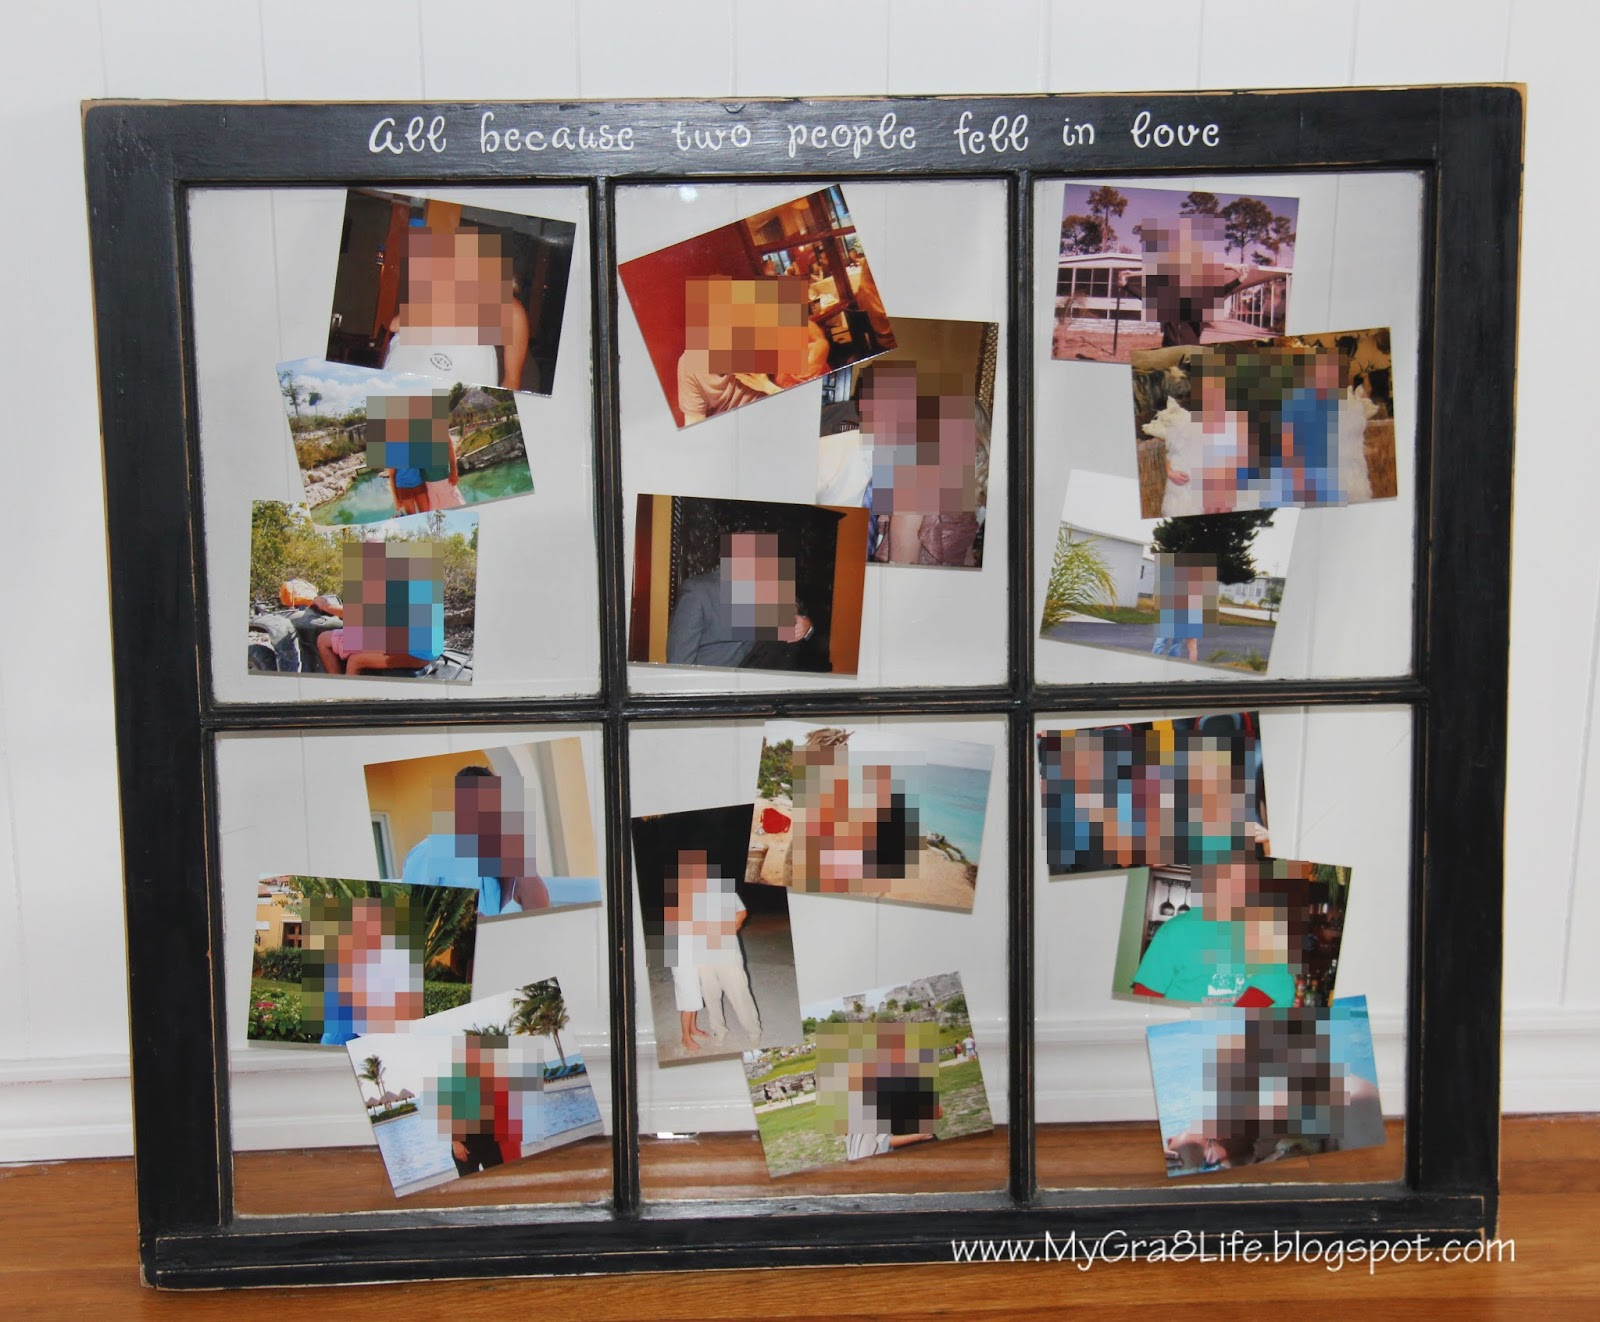 My Gra 8 Life: How to Make an Old Window into a Picture Frame